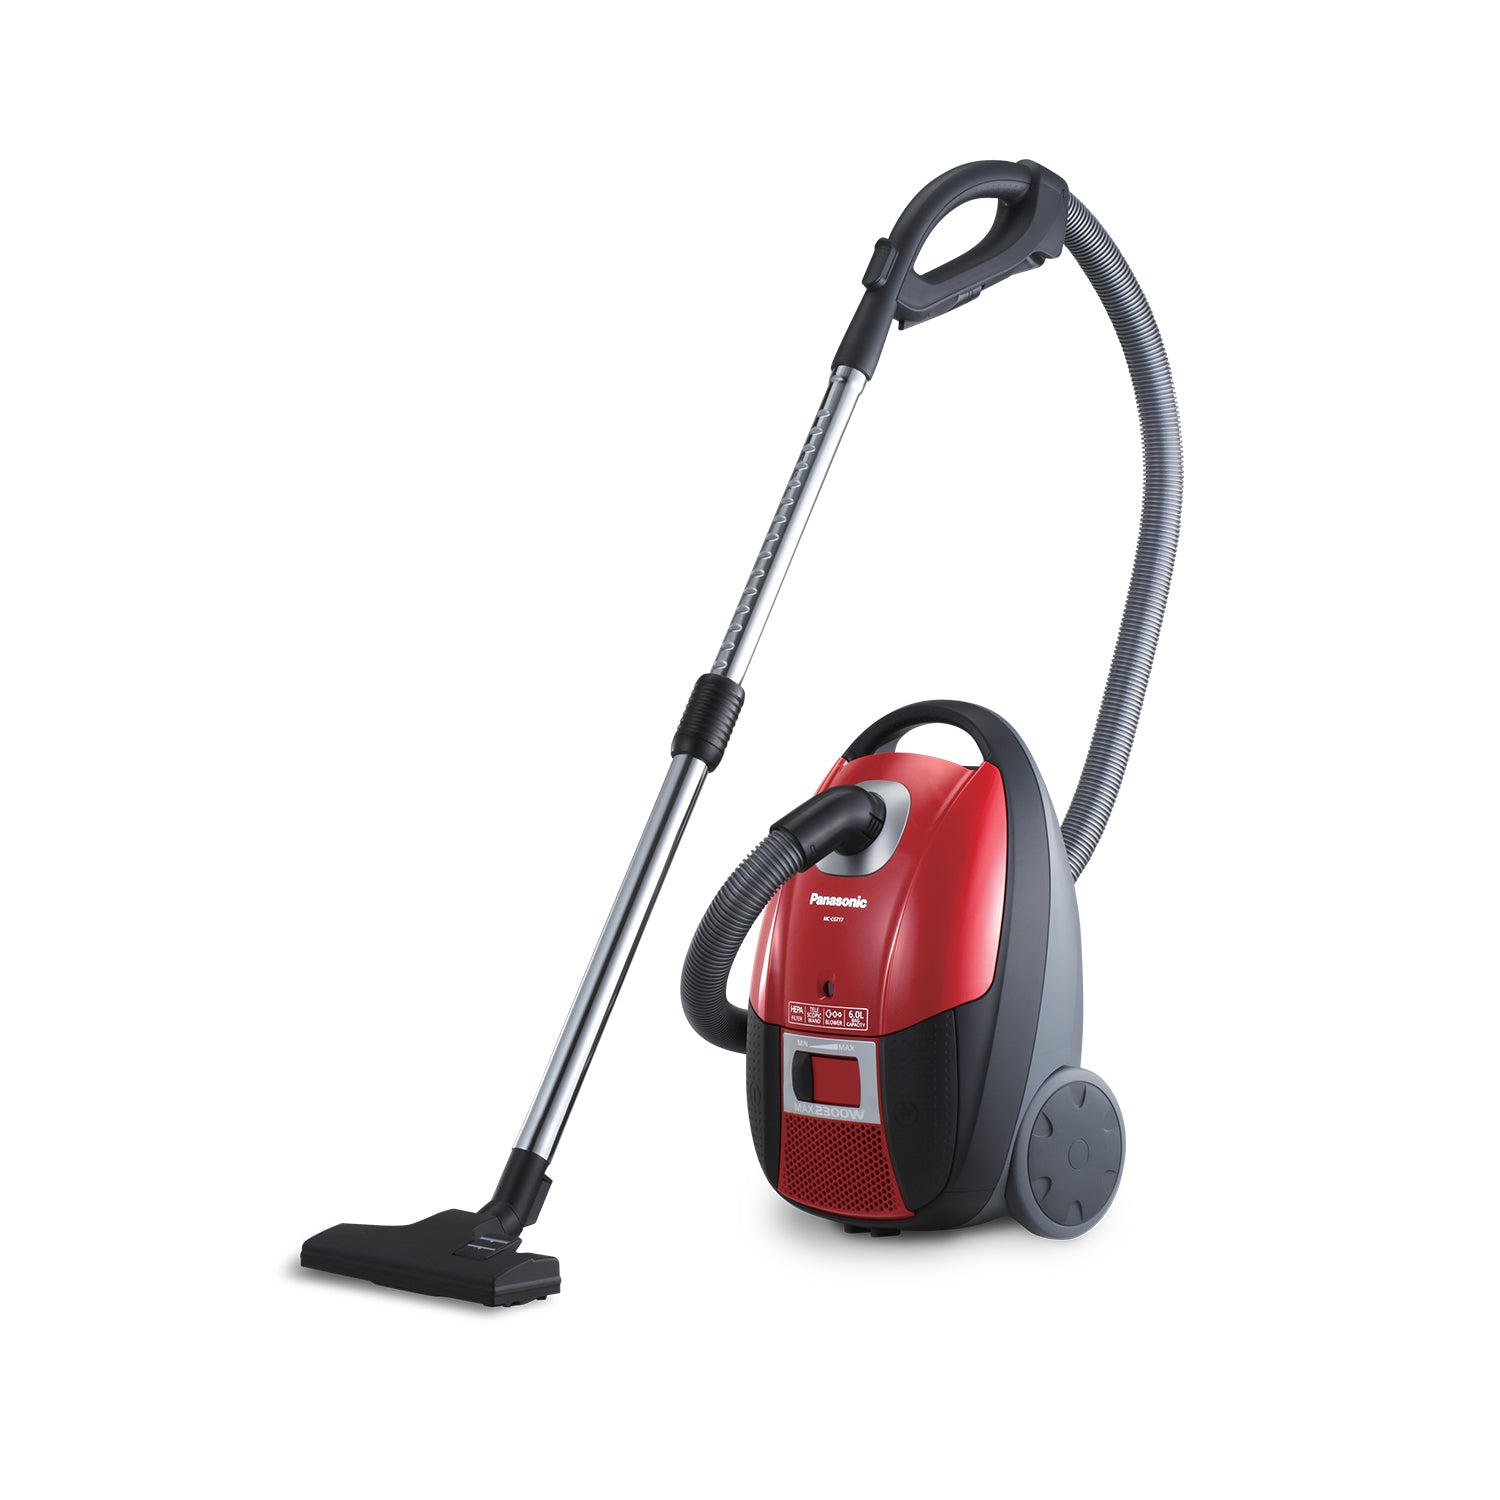 2300W Bagged Canister Vacuum Cleaner 6L